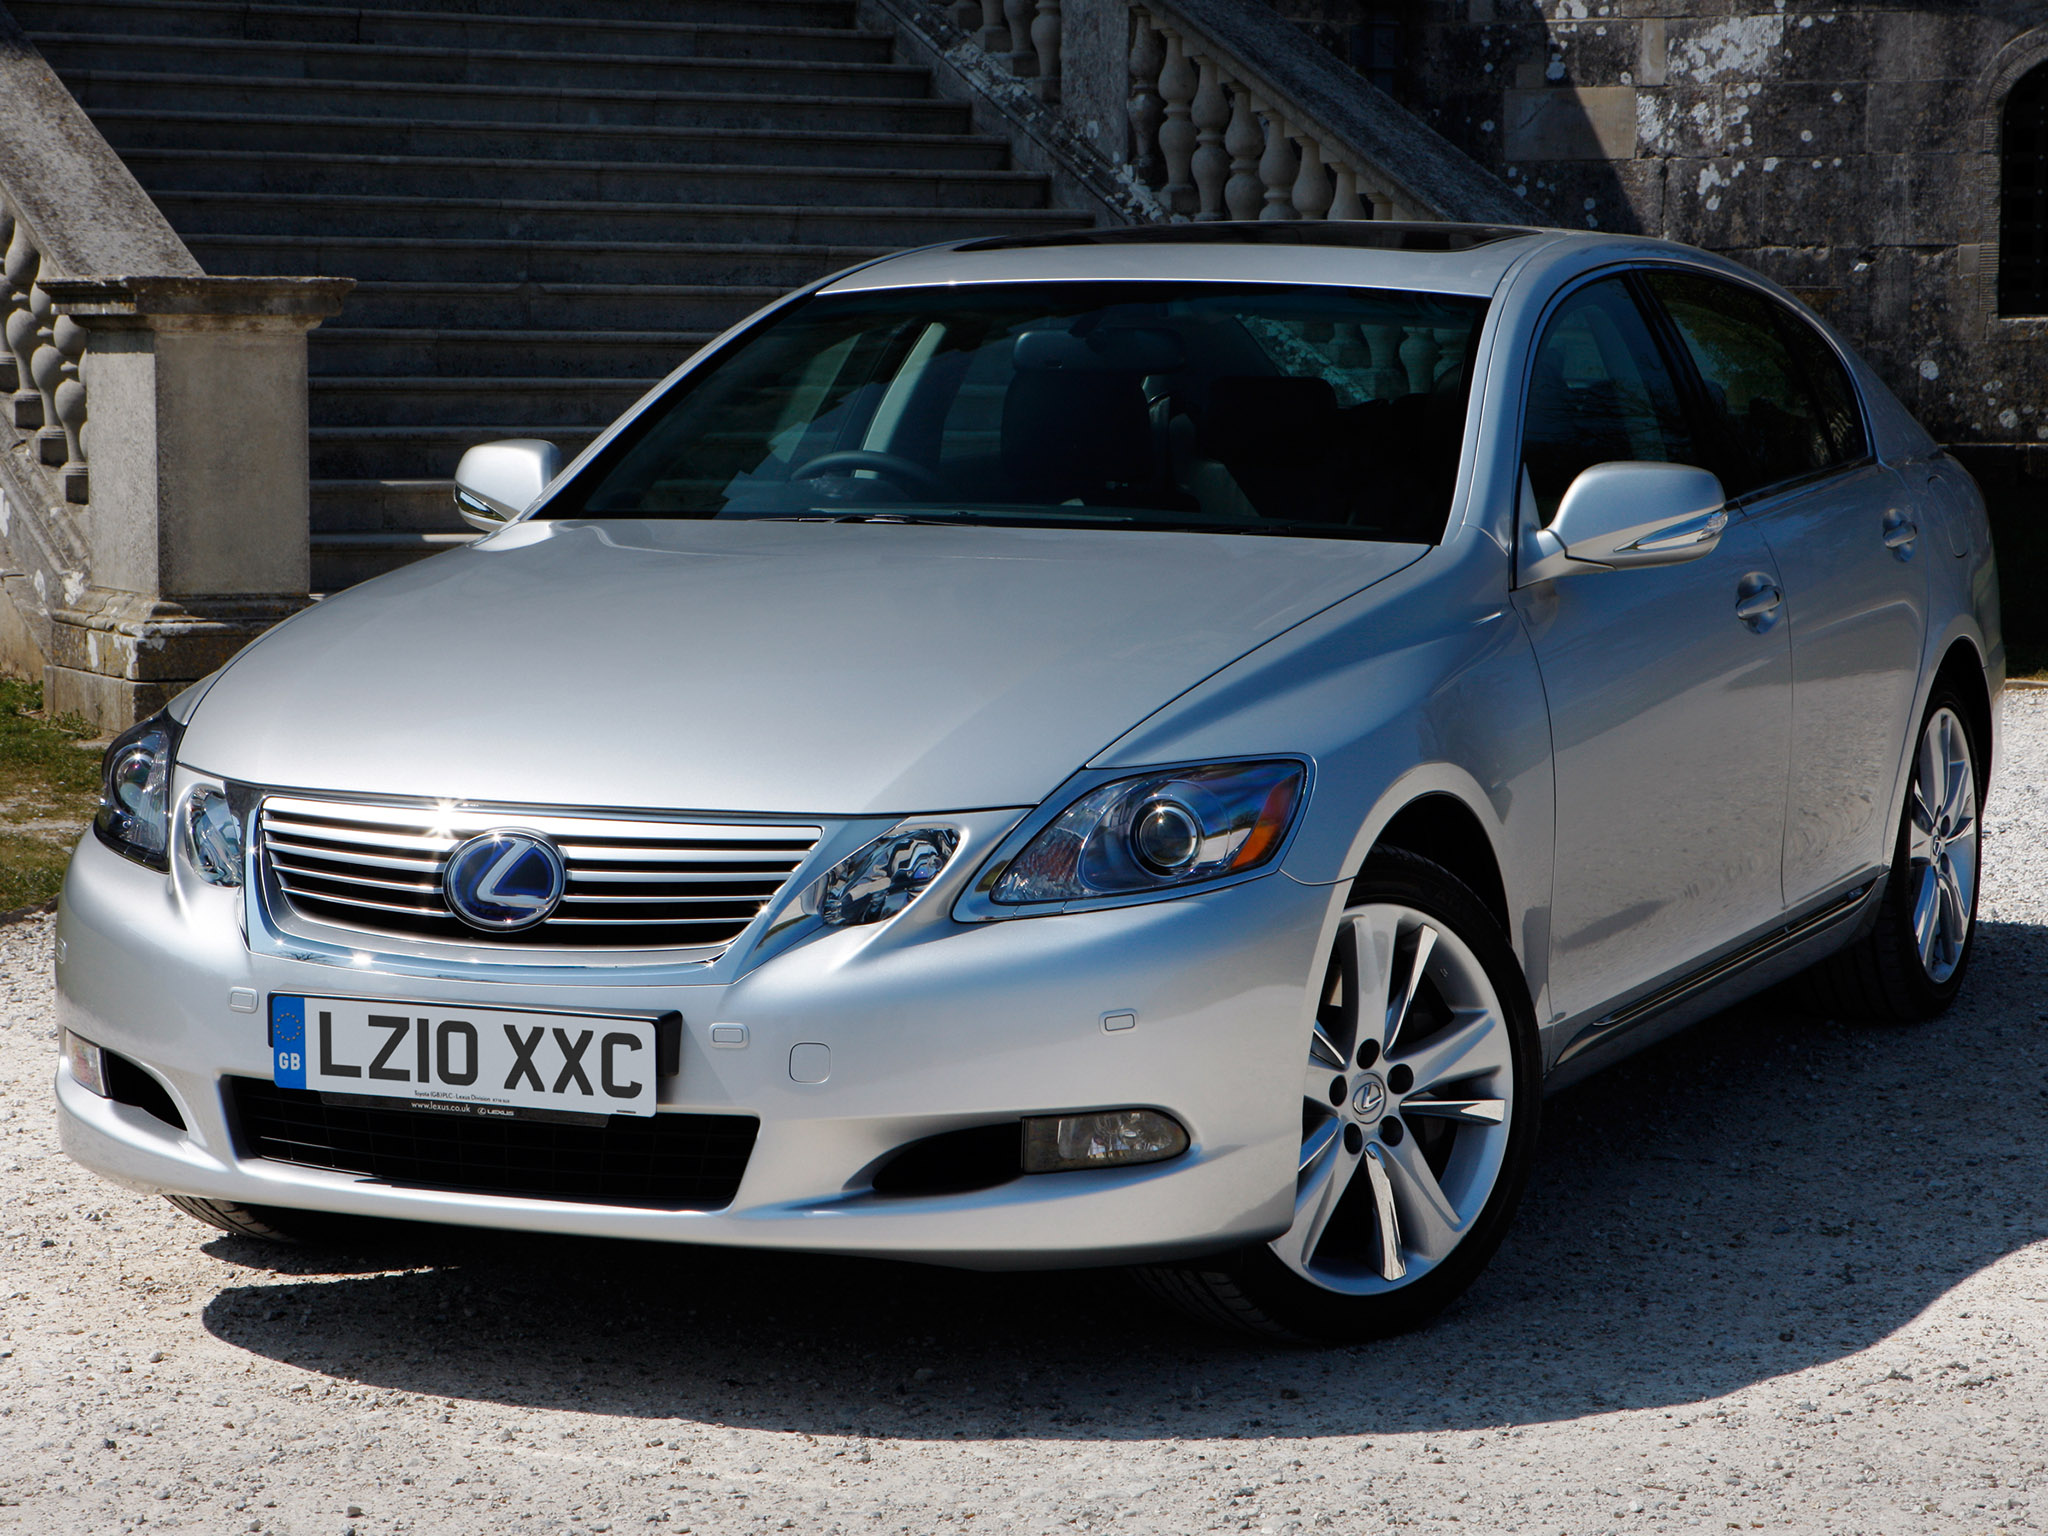 Lexus GS 450h UK photo gallery Free Download Image Of